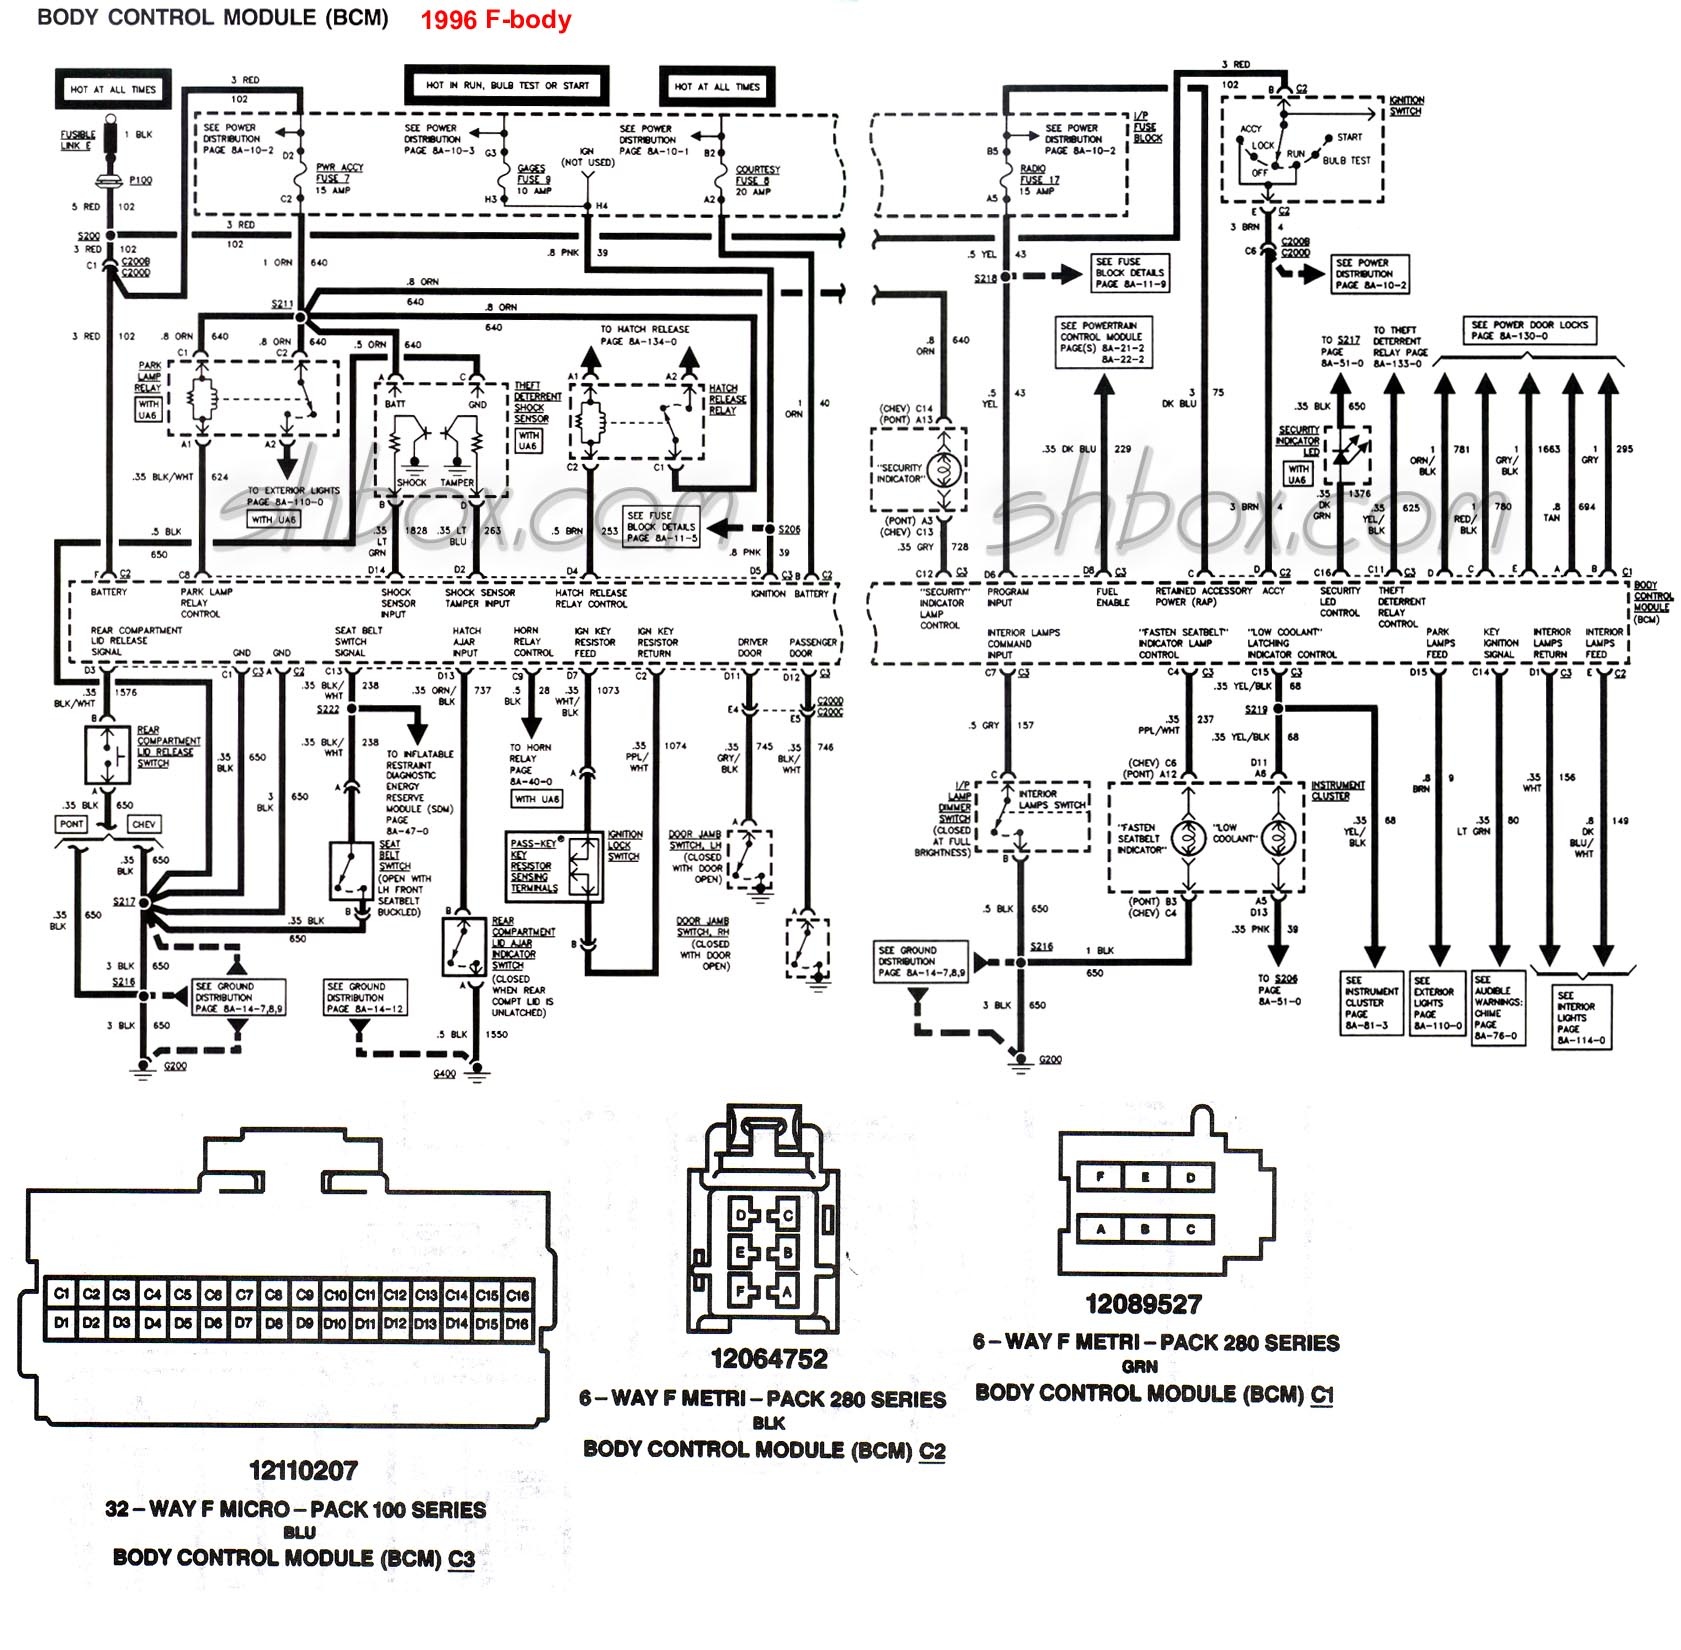 hight resolution of 4th gen lt1 f body tech aids regulator wiring diagram on 96 chevrolet caprice wiring diagram